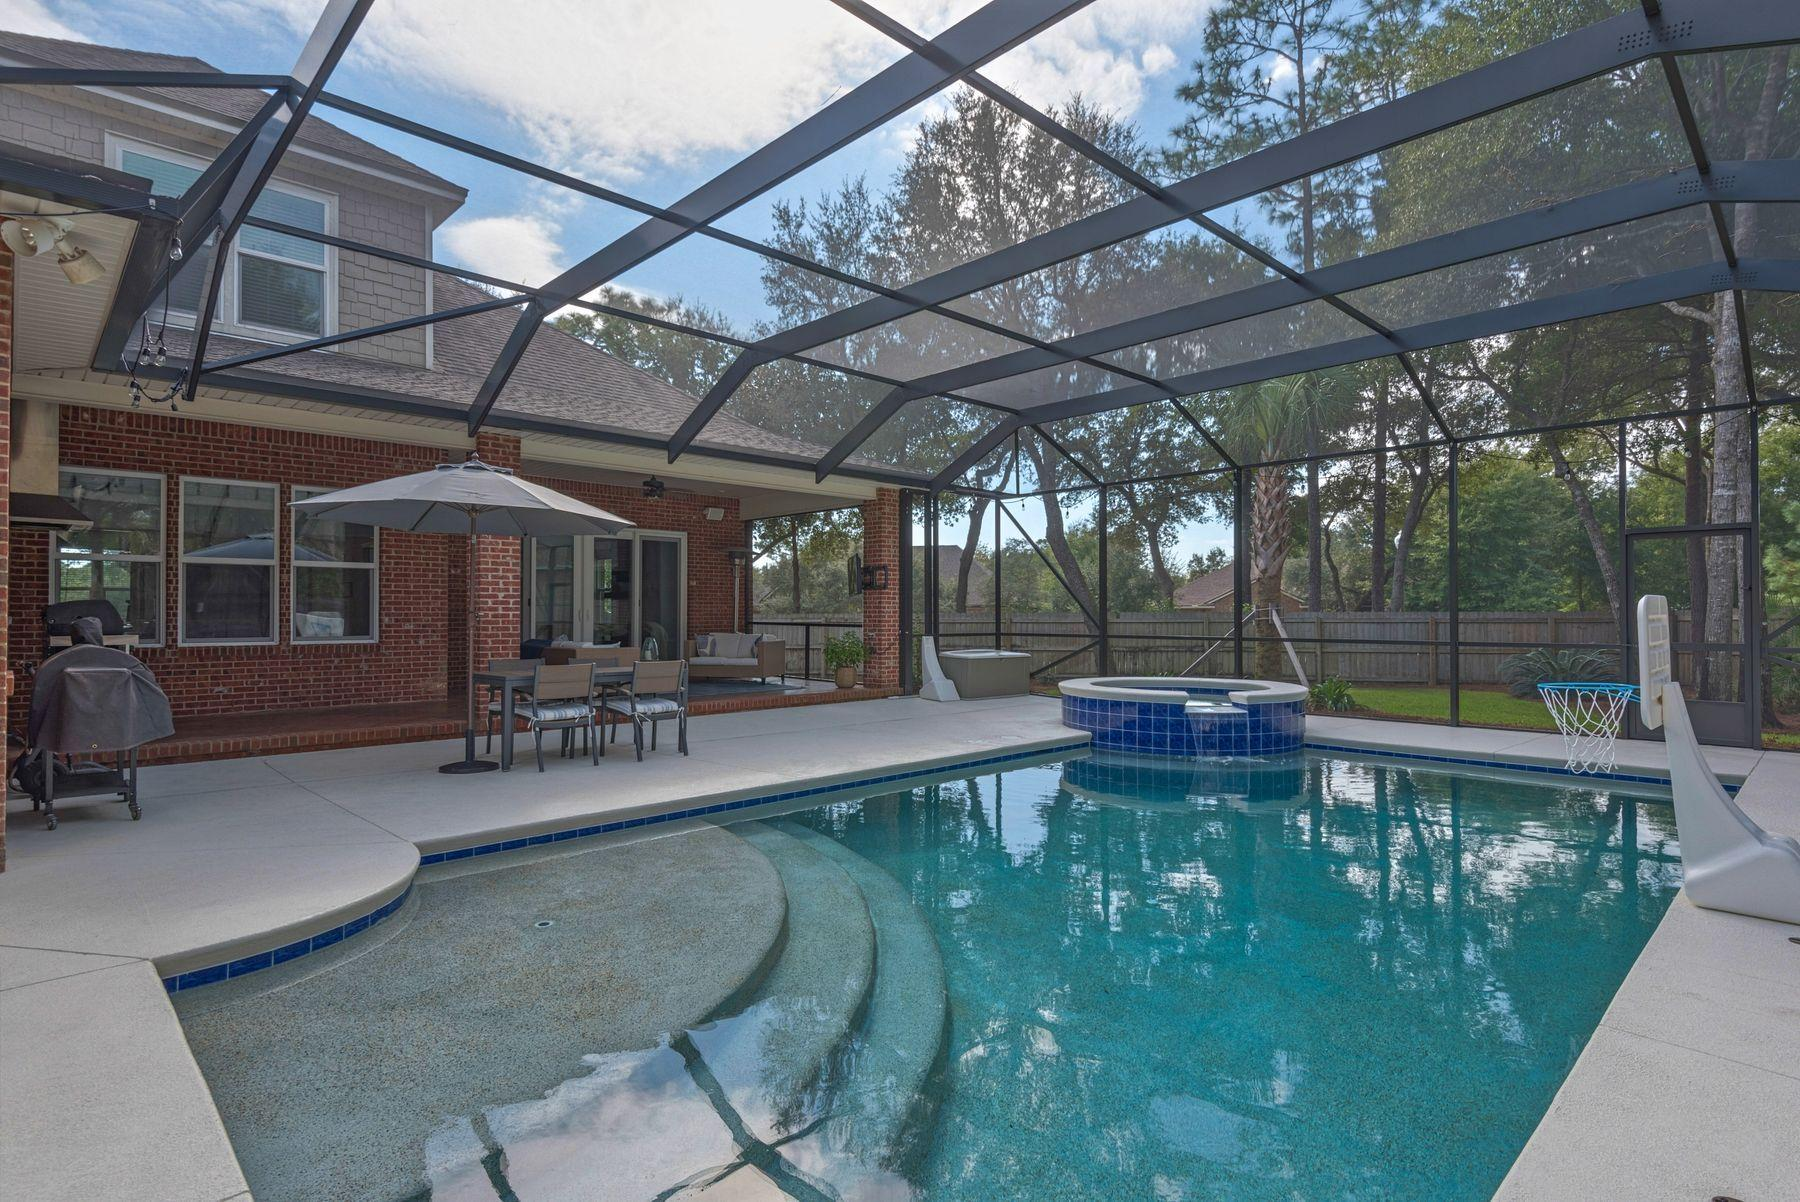 3001  Stony Creek Cove, Niceville, Florida